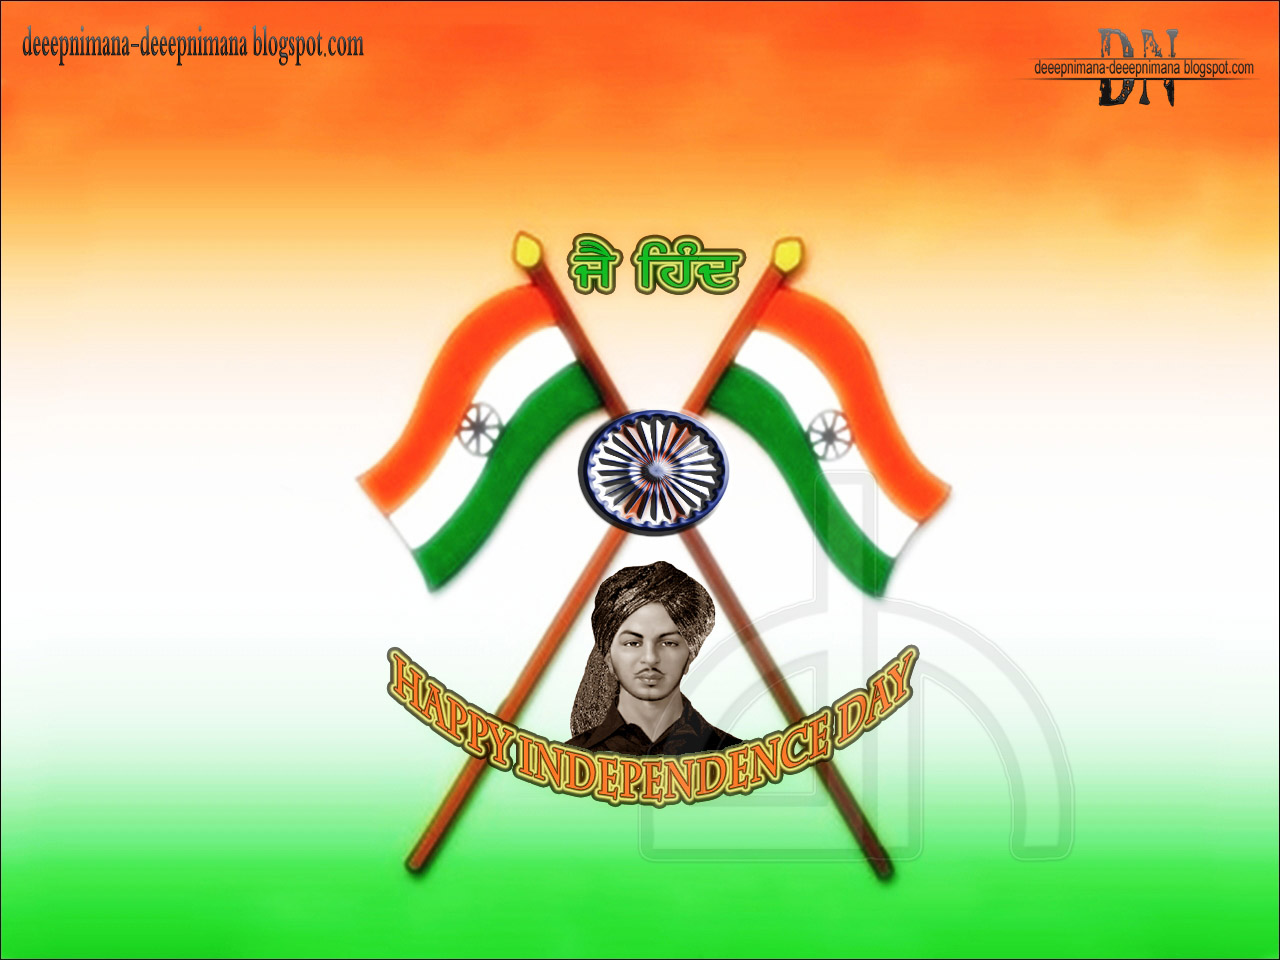 Sikh Animated Wallpaper Deeepnimana Deeepnimana Blogspot Com Independence Day